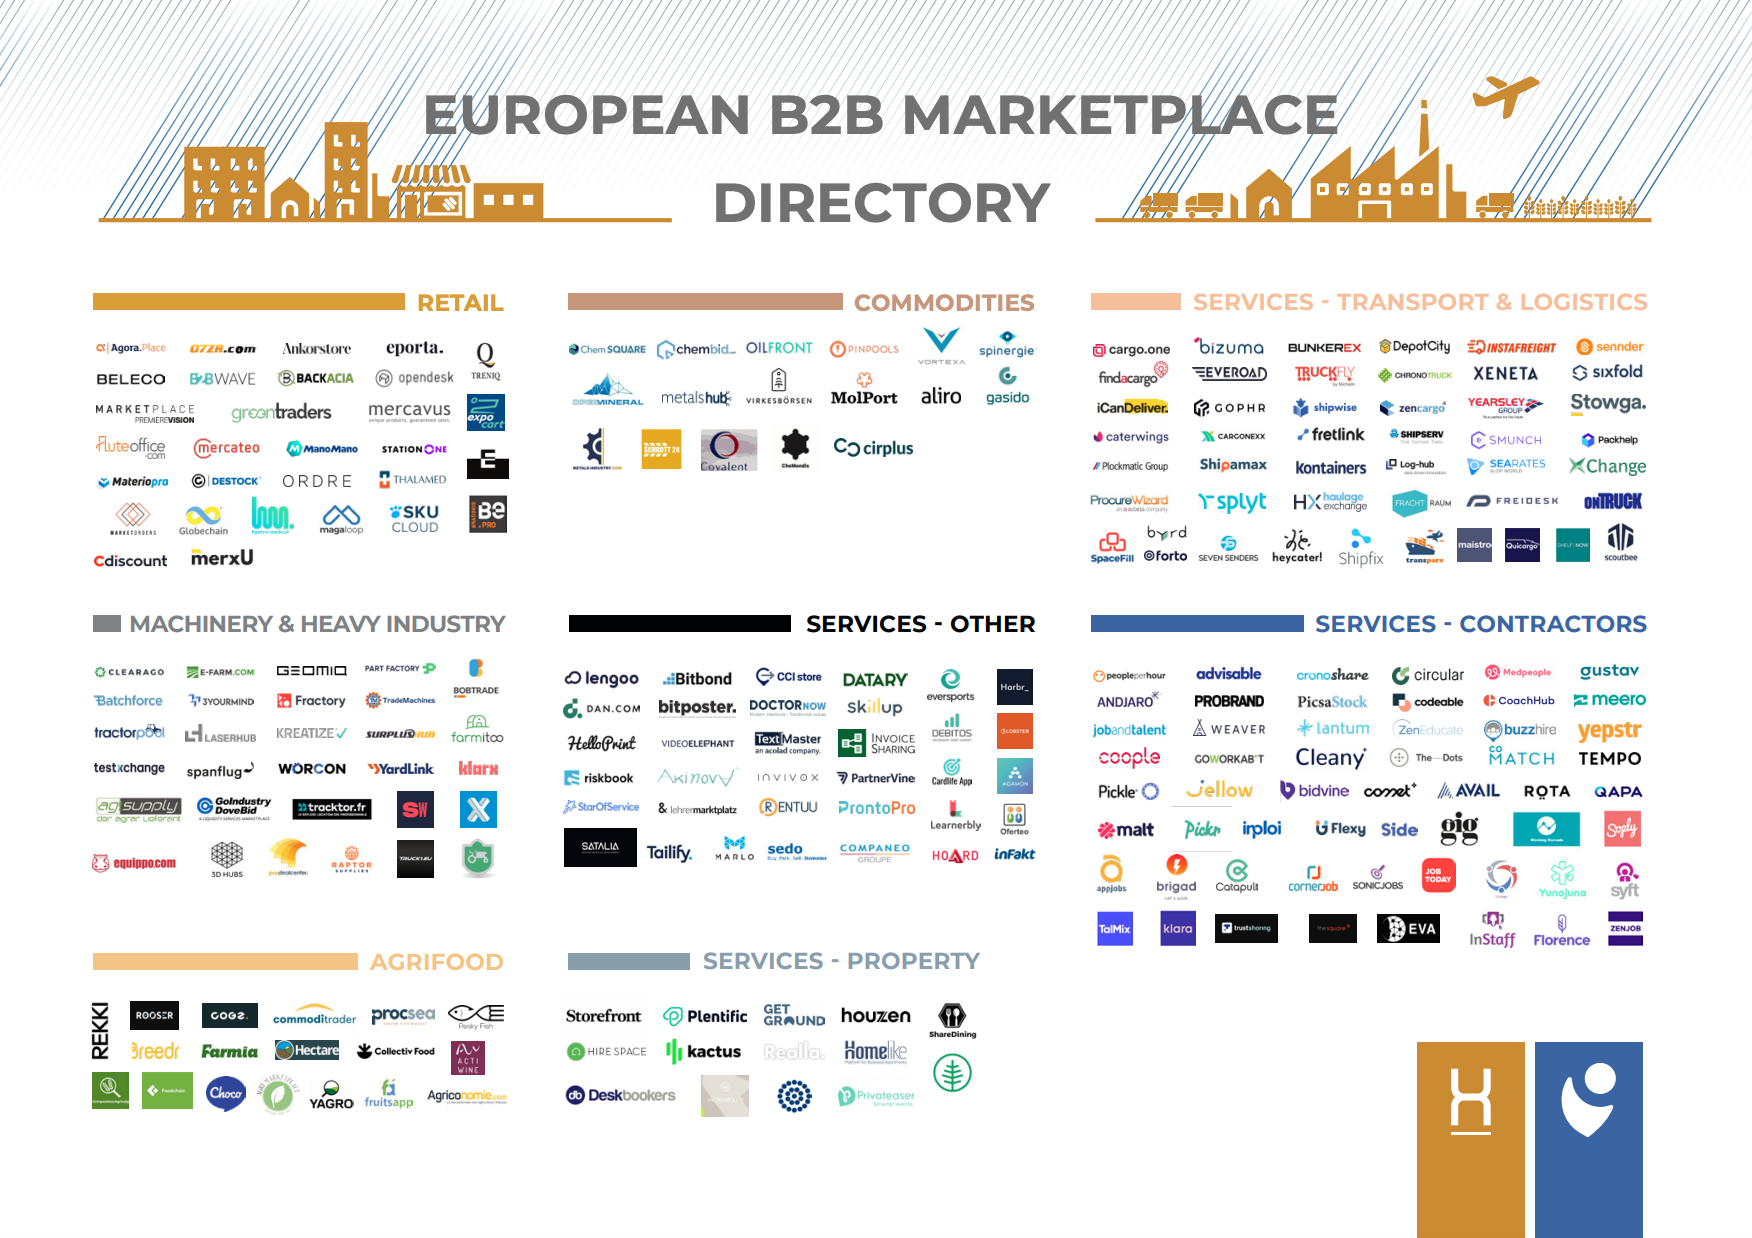 Scaling a B2B Marketplace: Mapping the European B2B Marketplace Landscape